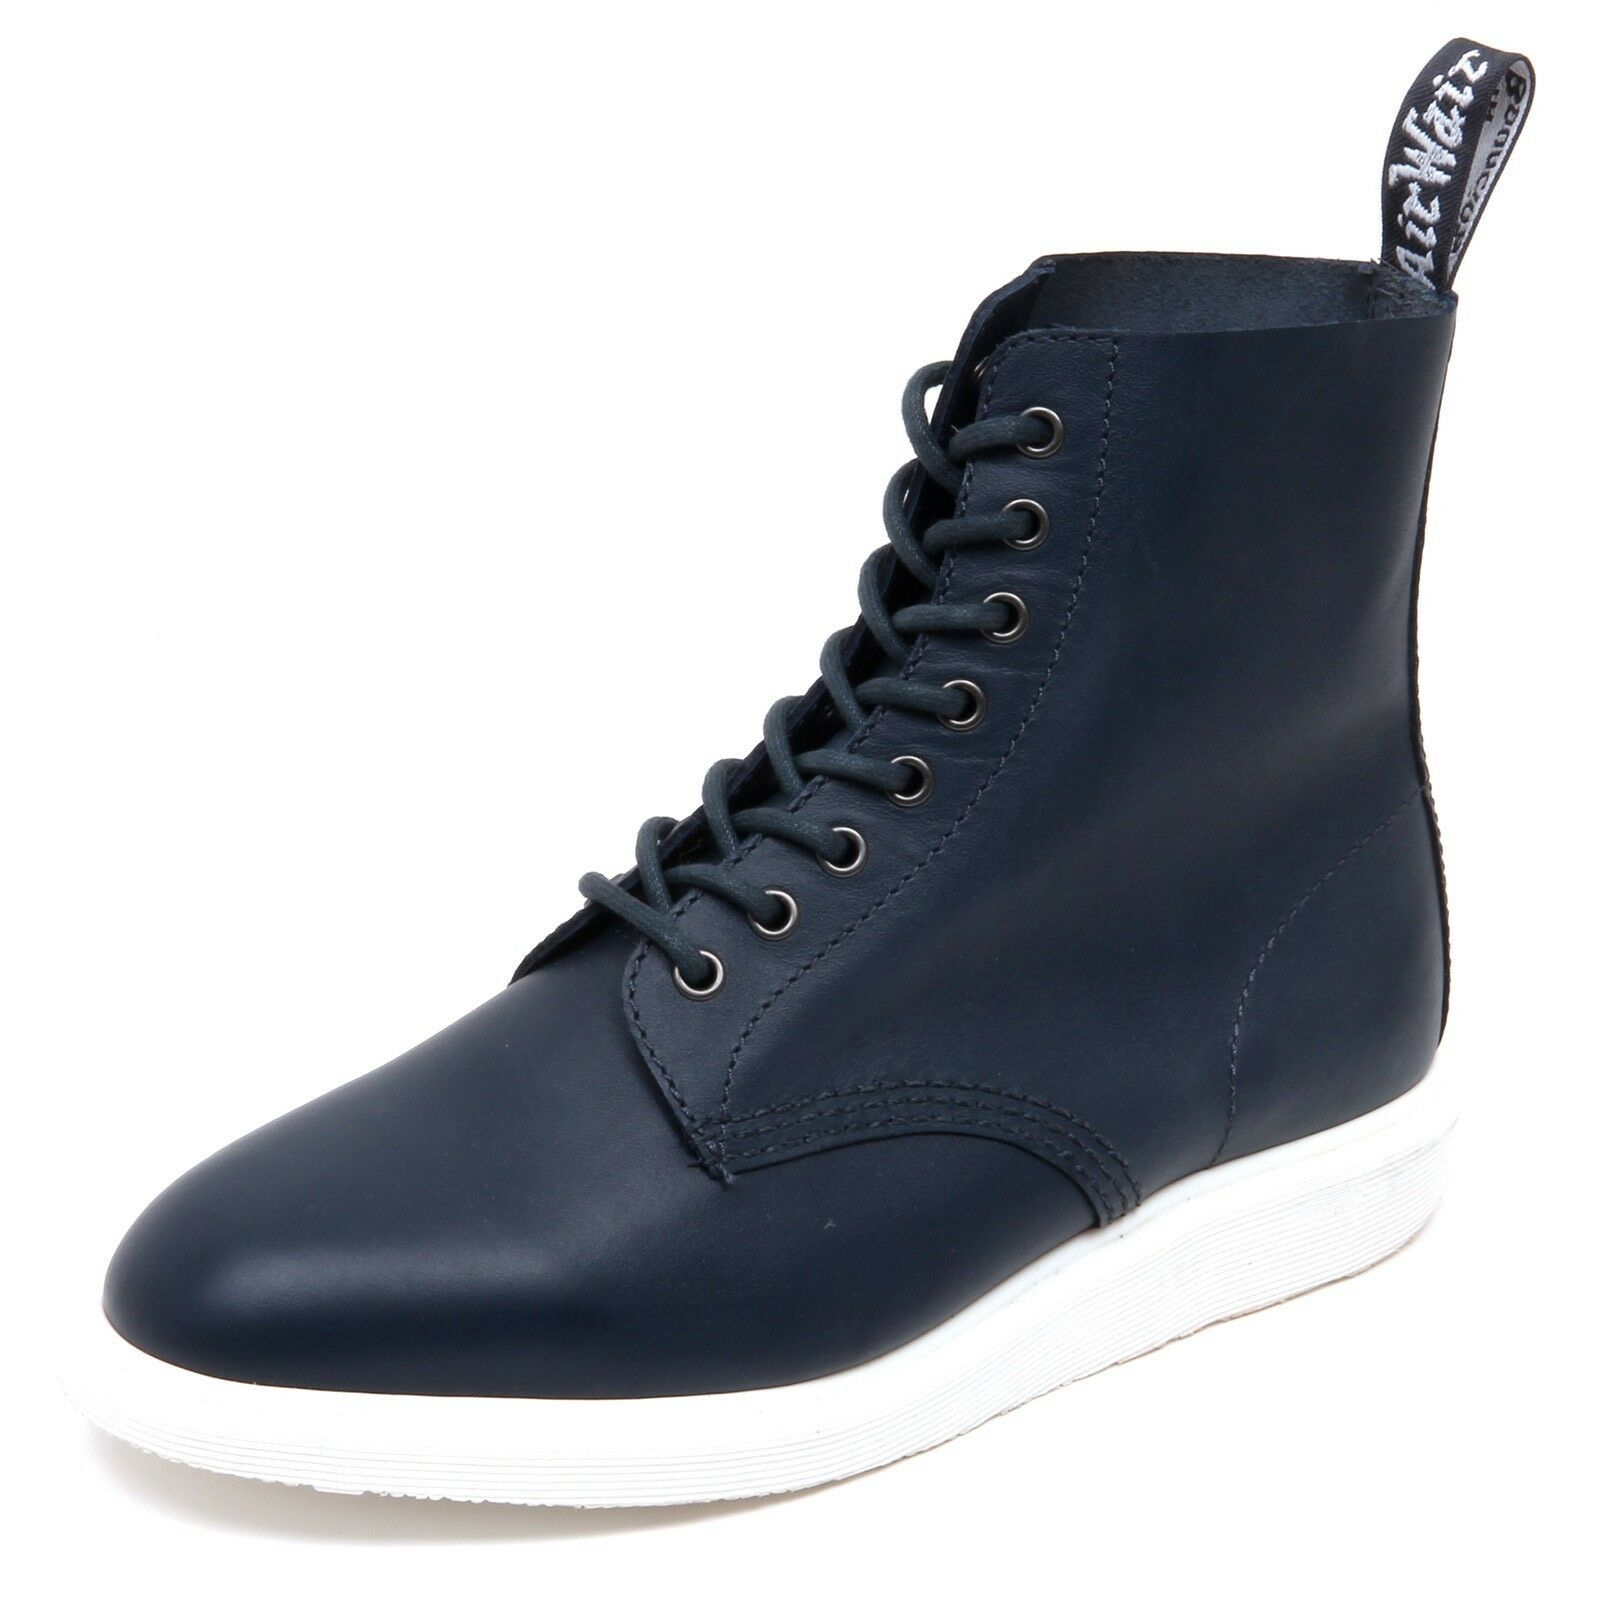 D4504 (without box) sneaker uomo DR. MARTENS WHITON blu boot shoe man